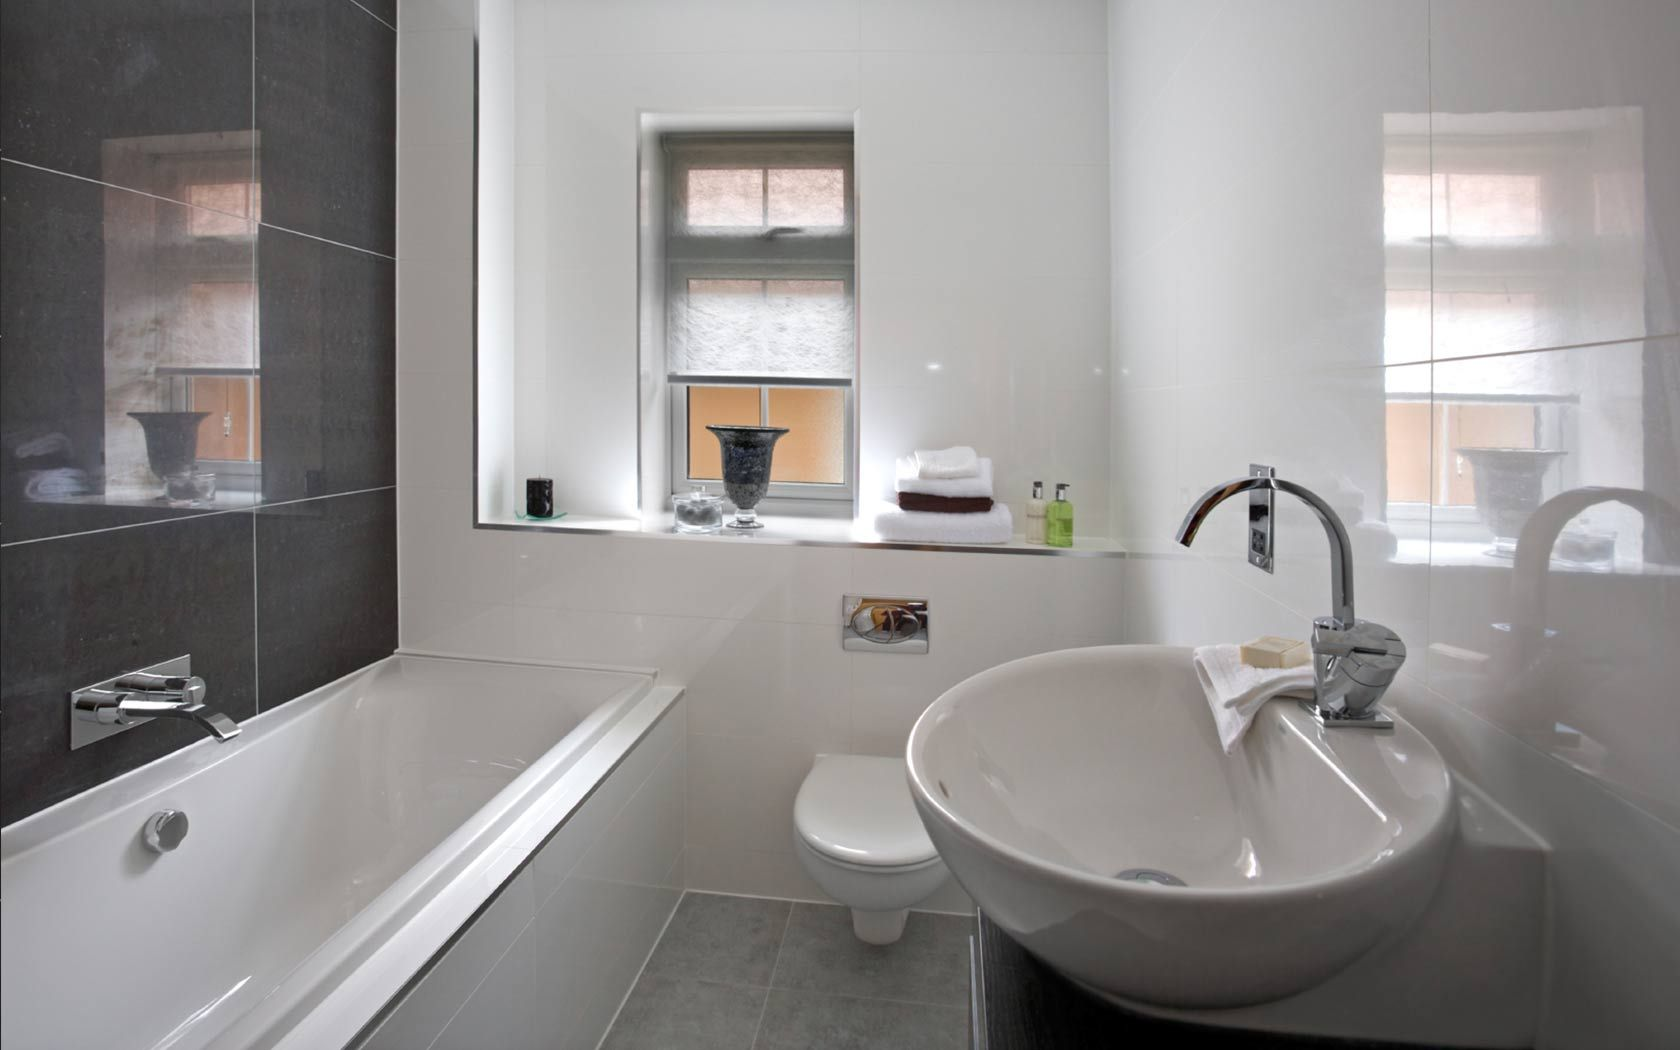 New Bathroom Installation Is In Your Budget Now!   Bathroom designs ...